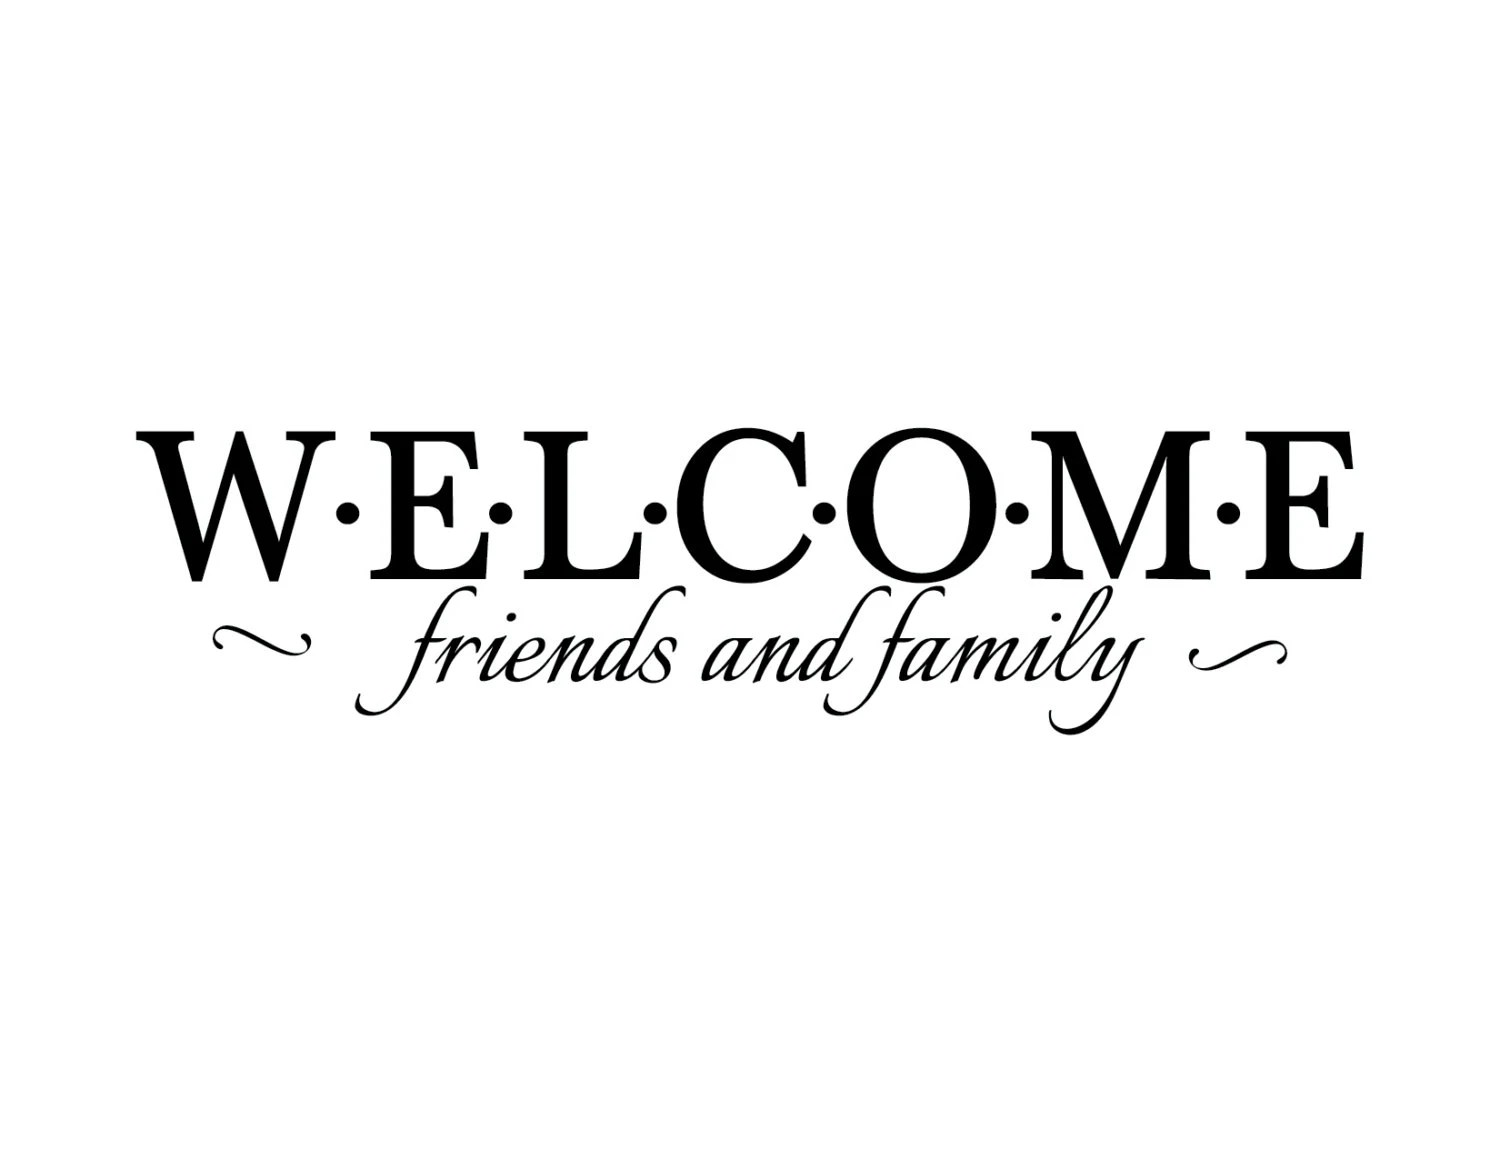 Welcome friends and family Family photo wall decal Foyer